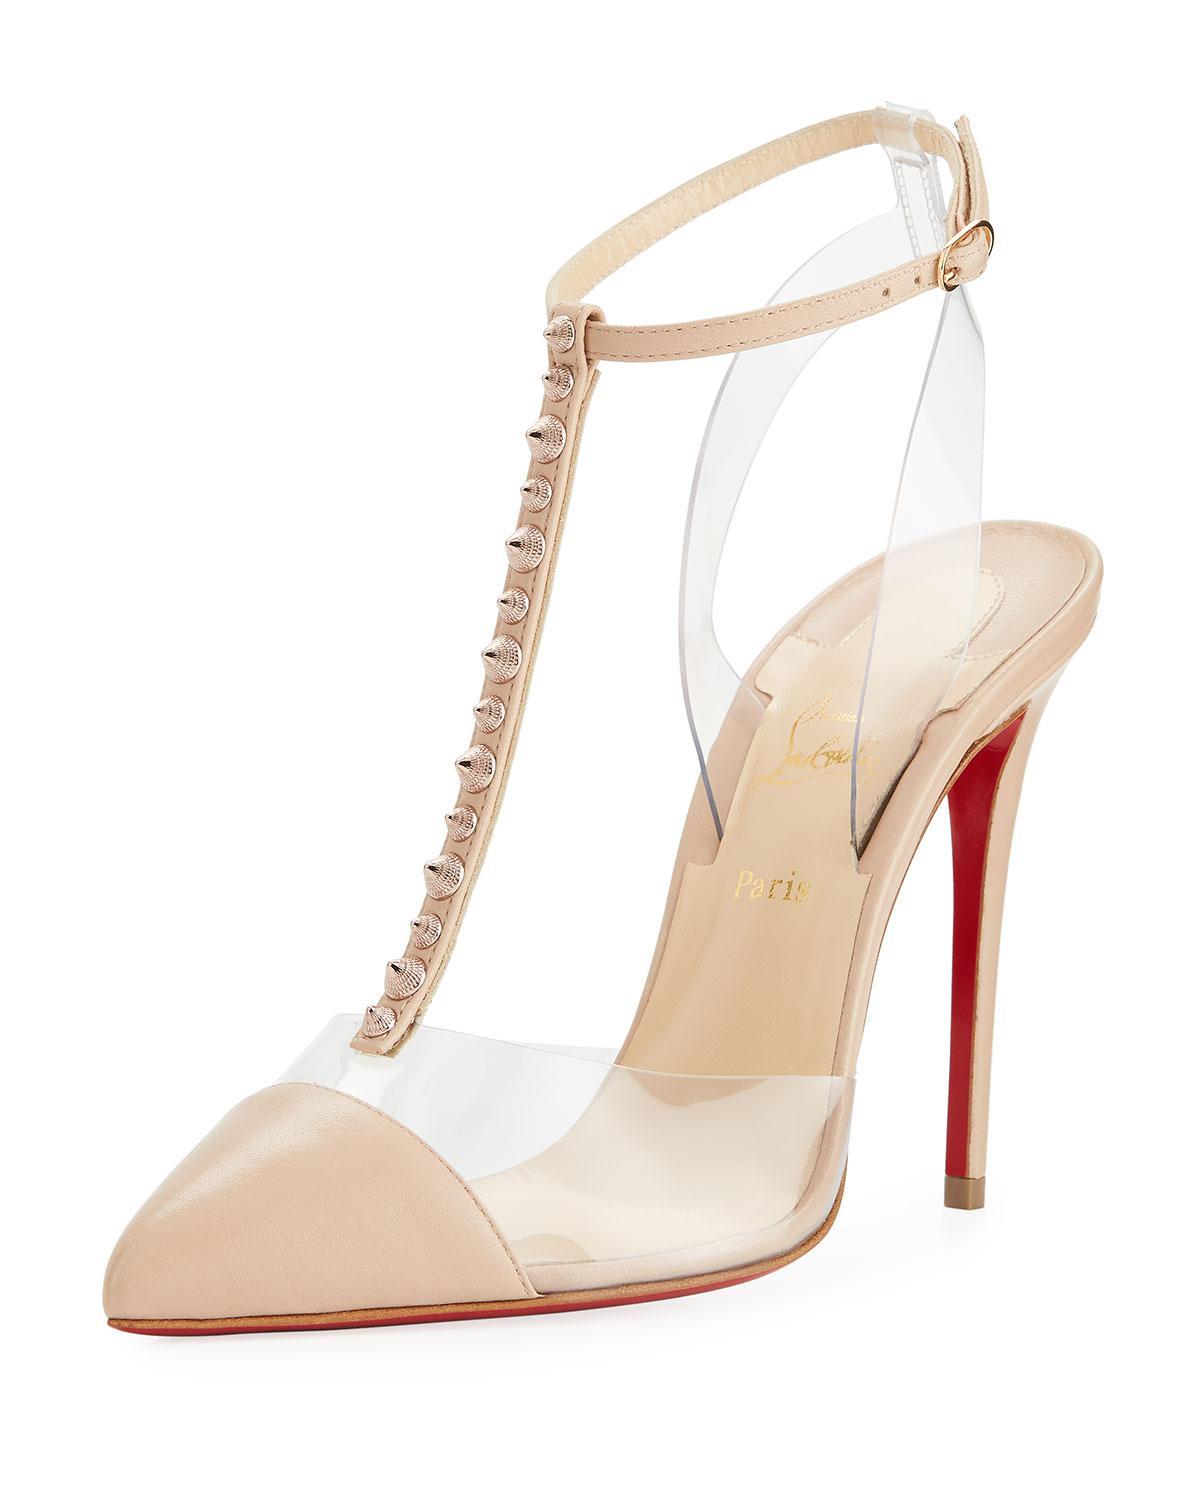 79099134f65 Lyst - Christian Louboutin Nosy Spikes Illusion Red Sole Pump in Natural